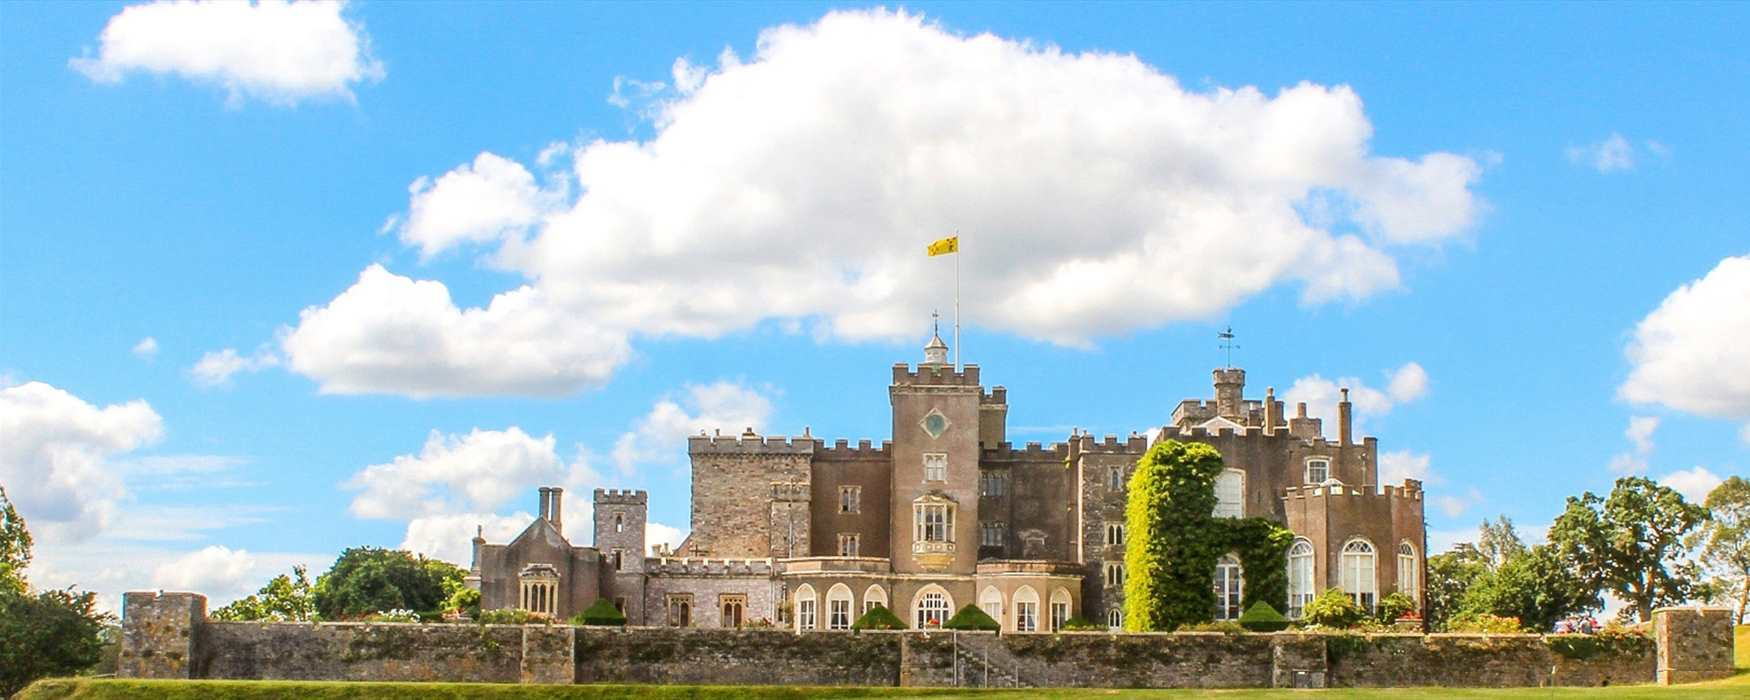 Powderham Castle, near Exeter